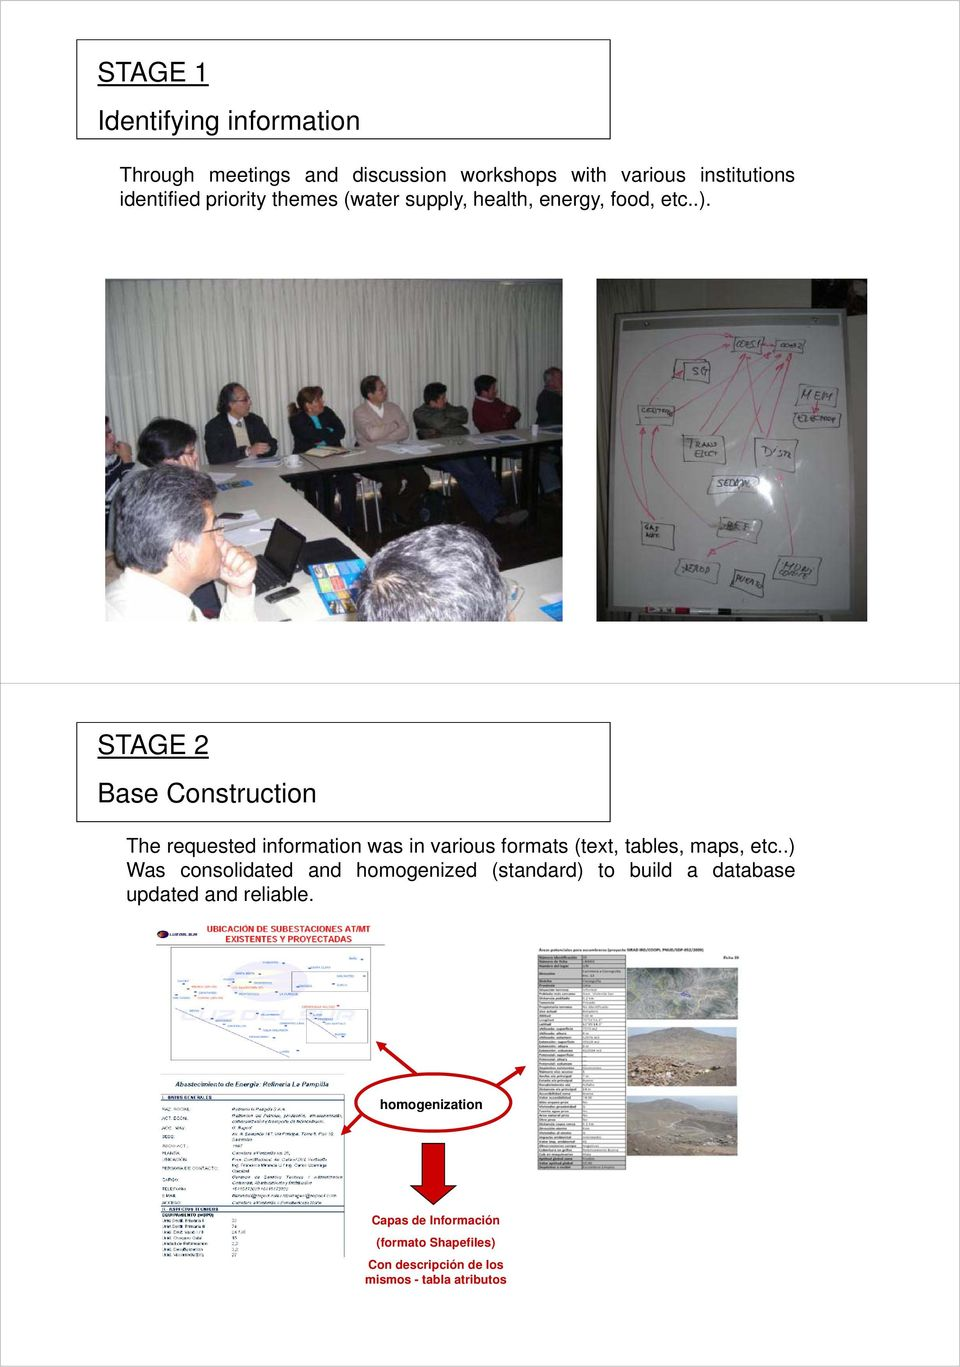 STAGE 2 Base Construction The requested information was in various formats (text, tables, maps, etc.